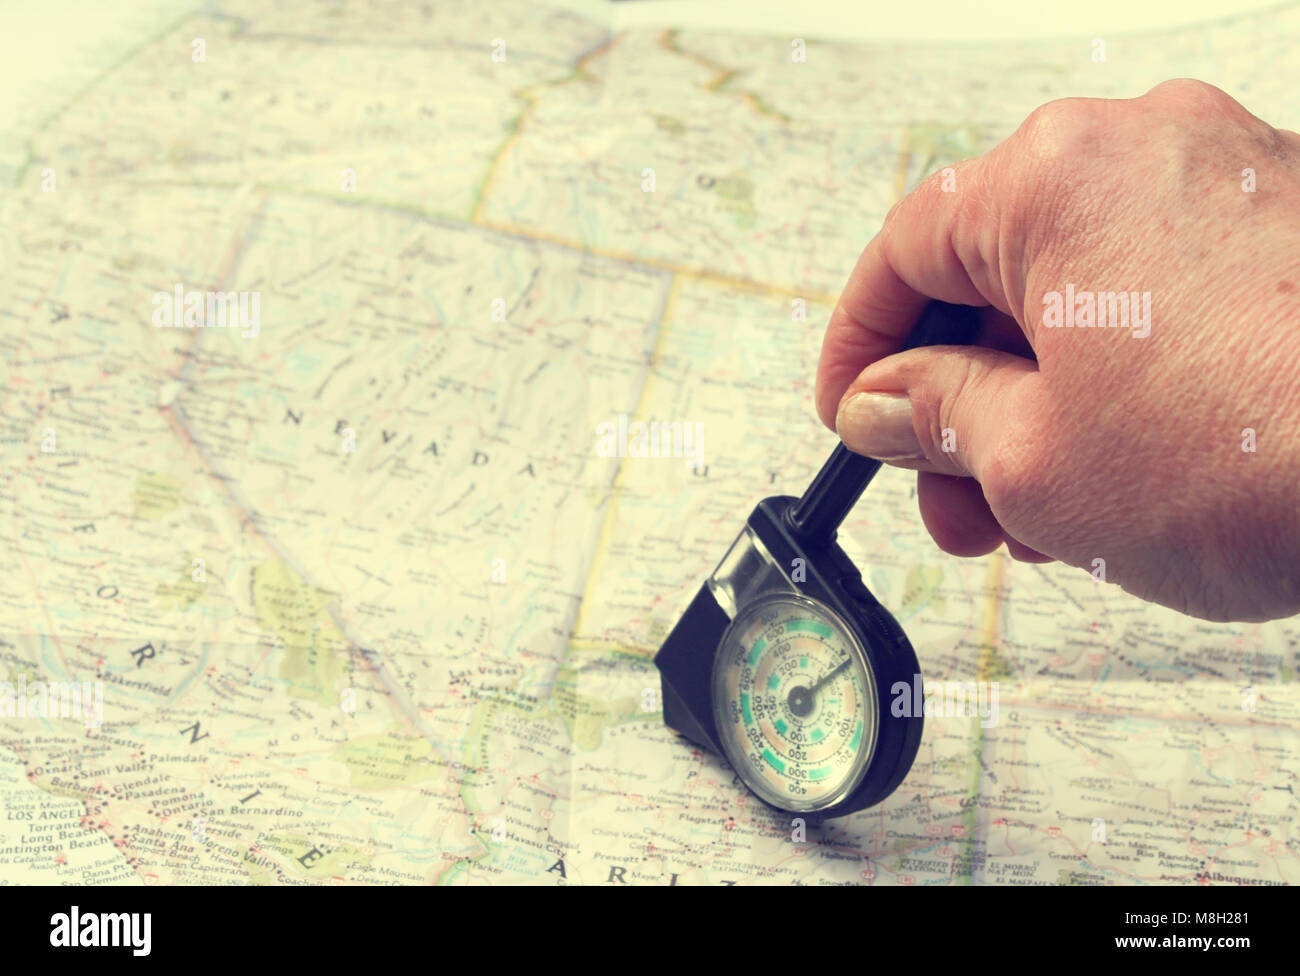 Hand with distance calculator on route map of west usa Stock Photo ...